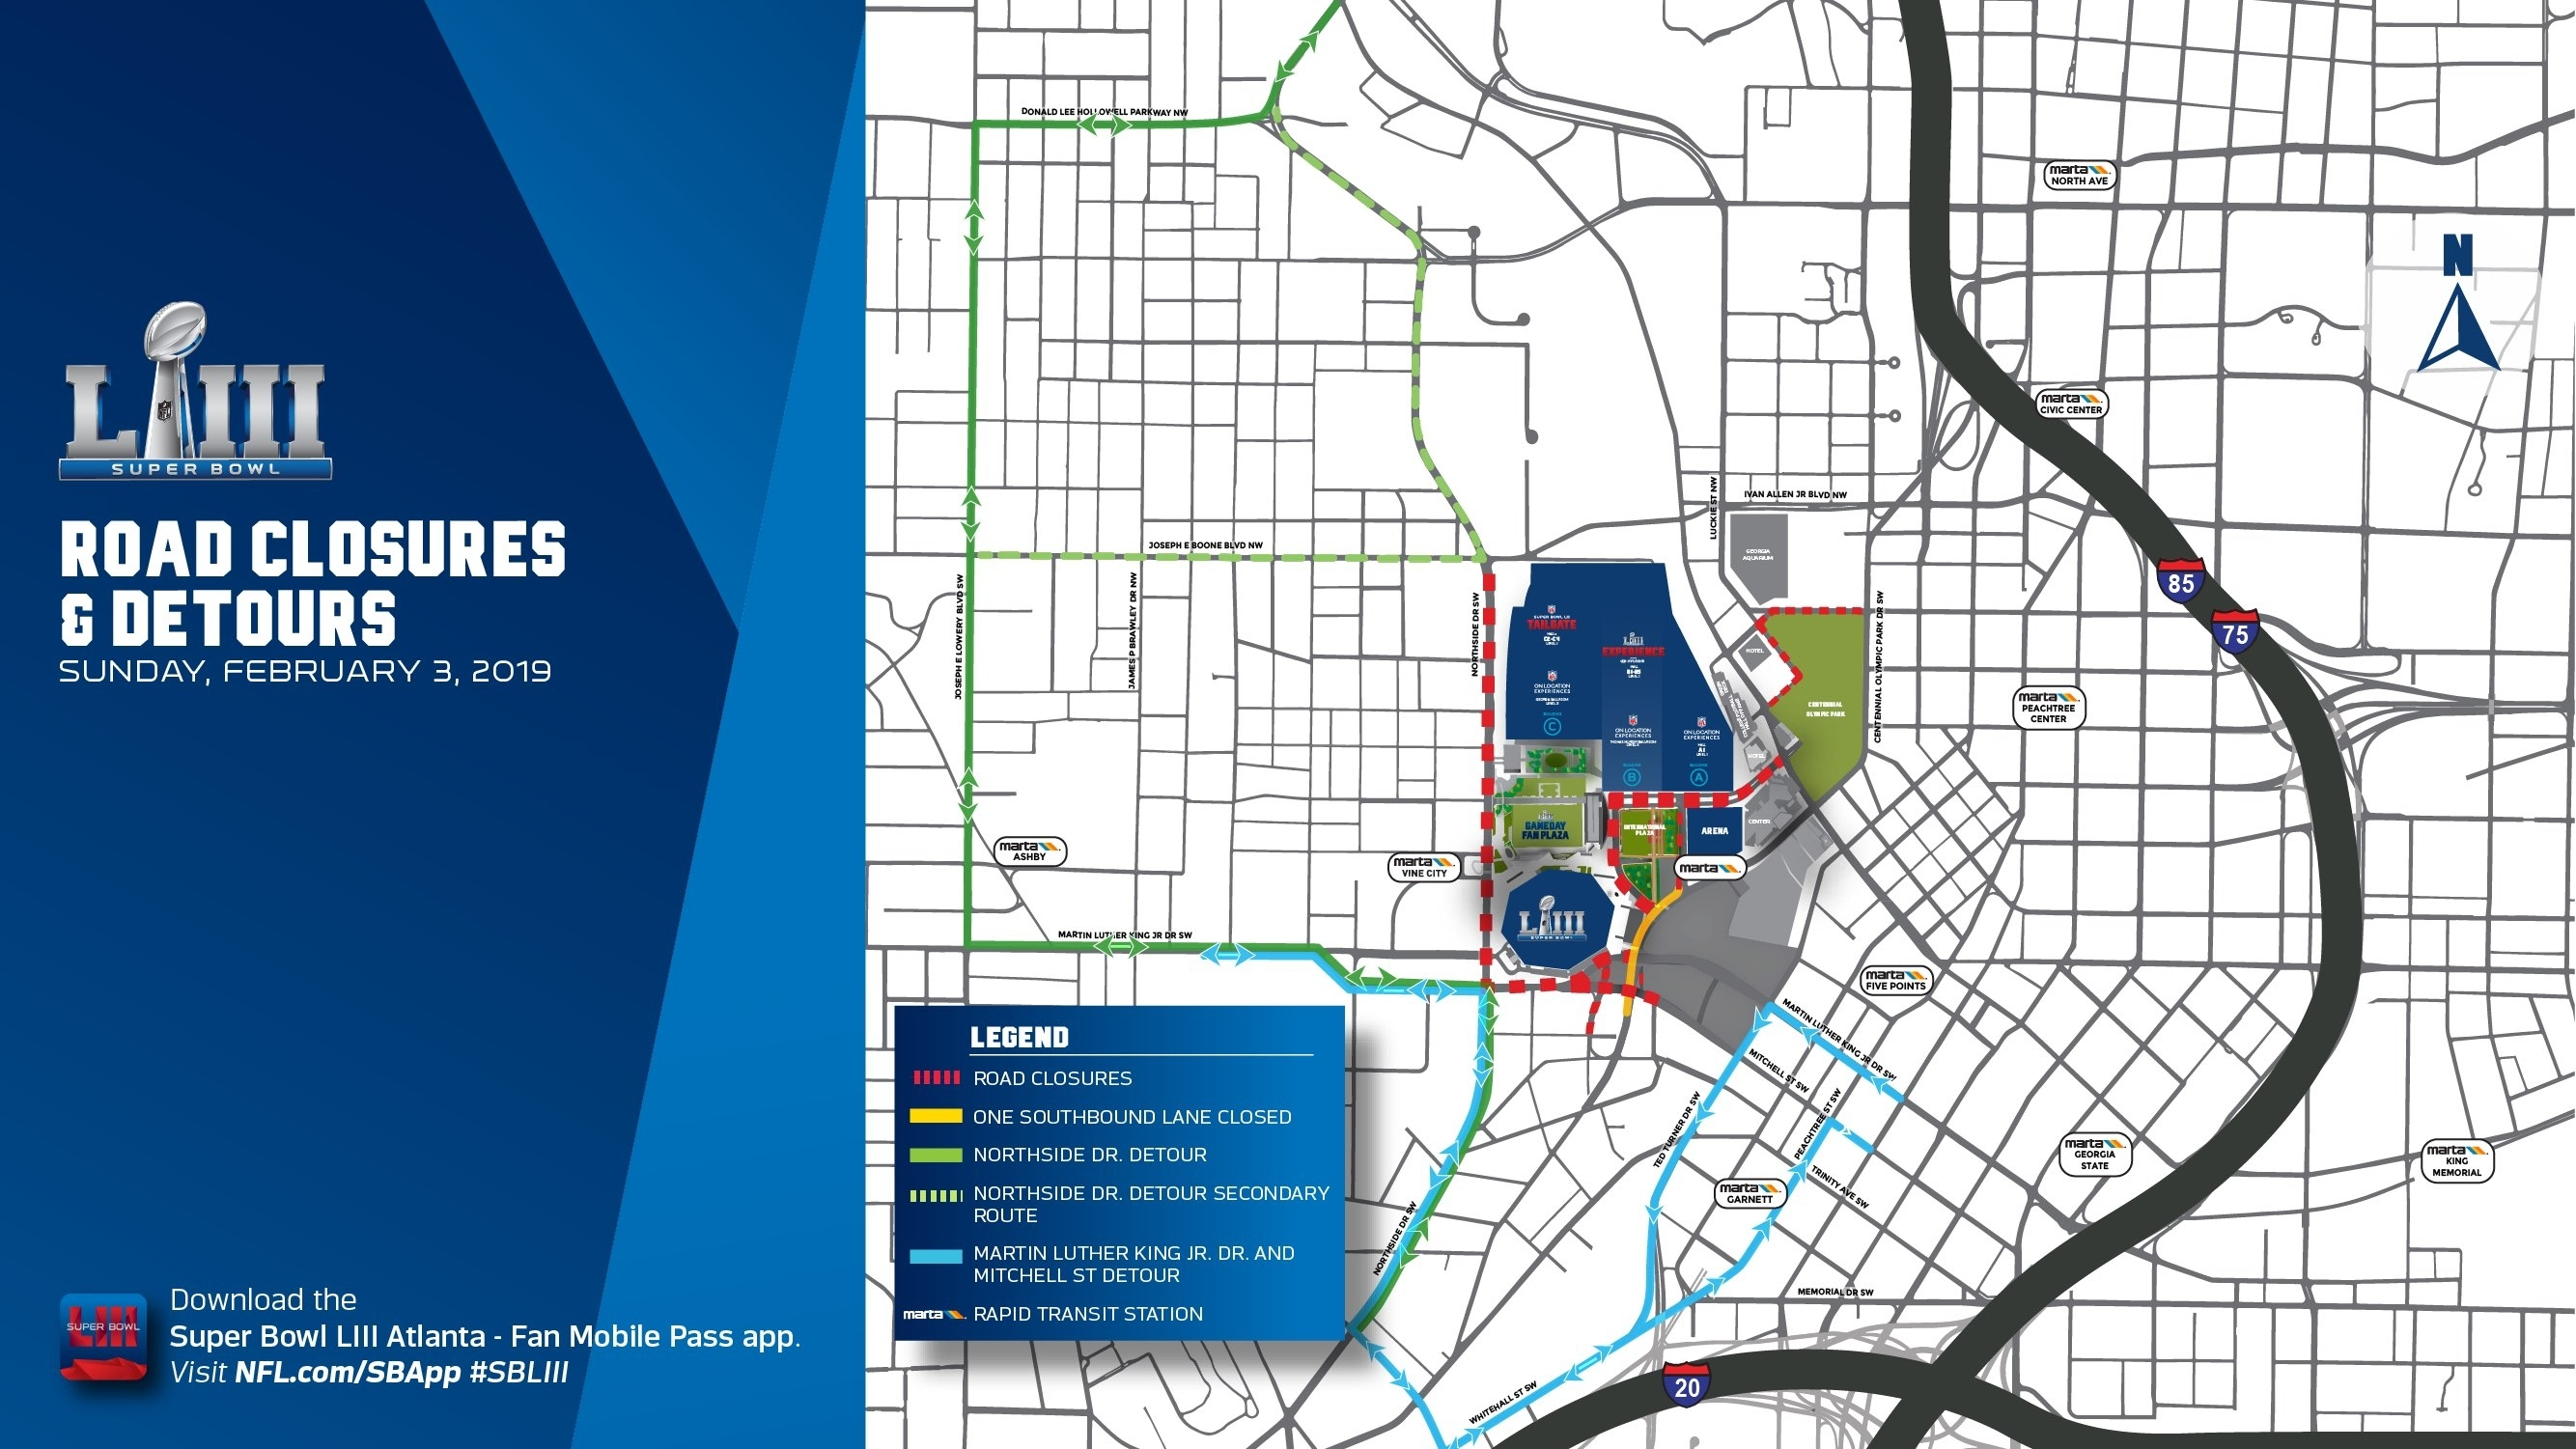 Gameday-Road-Closure-Map Copy - Mercedes Benz Stadium with Super Bowl Game Day Map